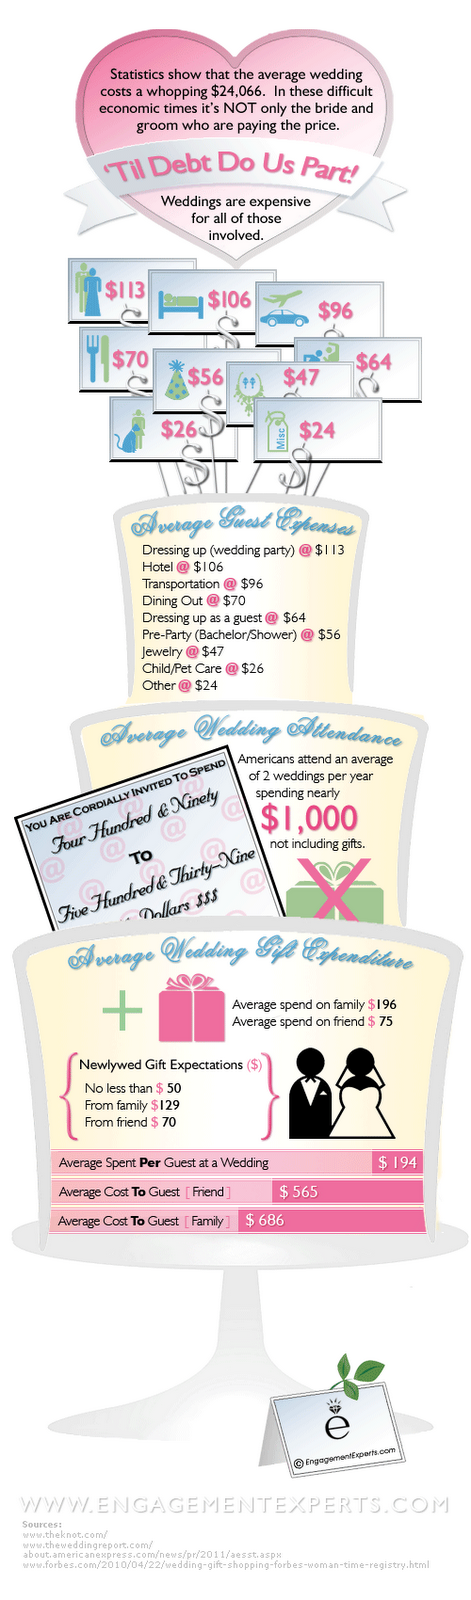 cost to attend wedding infographic